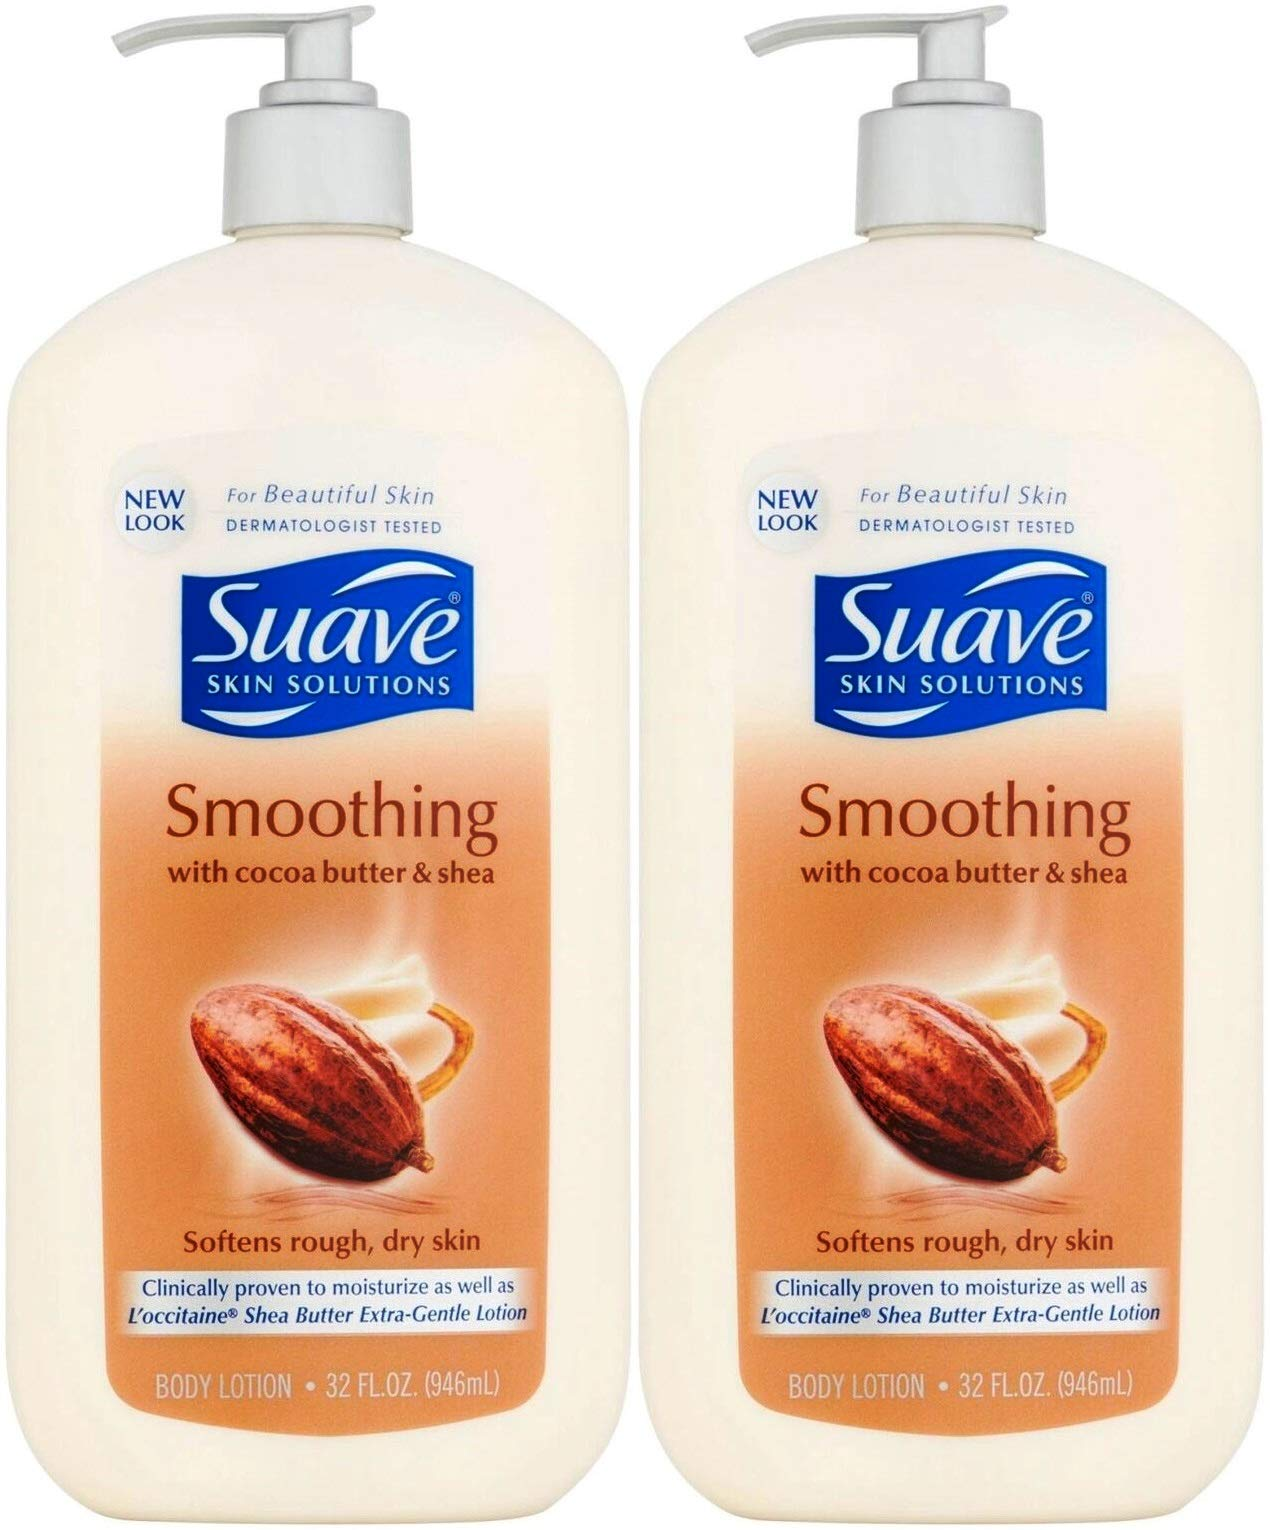 Suave Skin Solutions Smoothing Body Lotion with Cocoa Butter and Shea, 32 Ounce (Pack of 2) by Suave